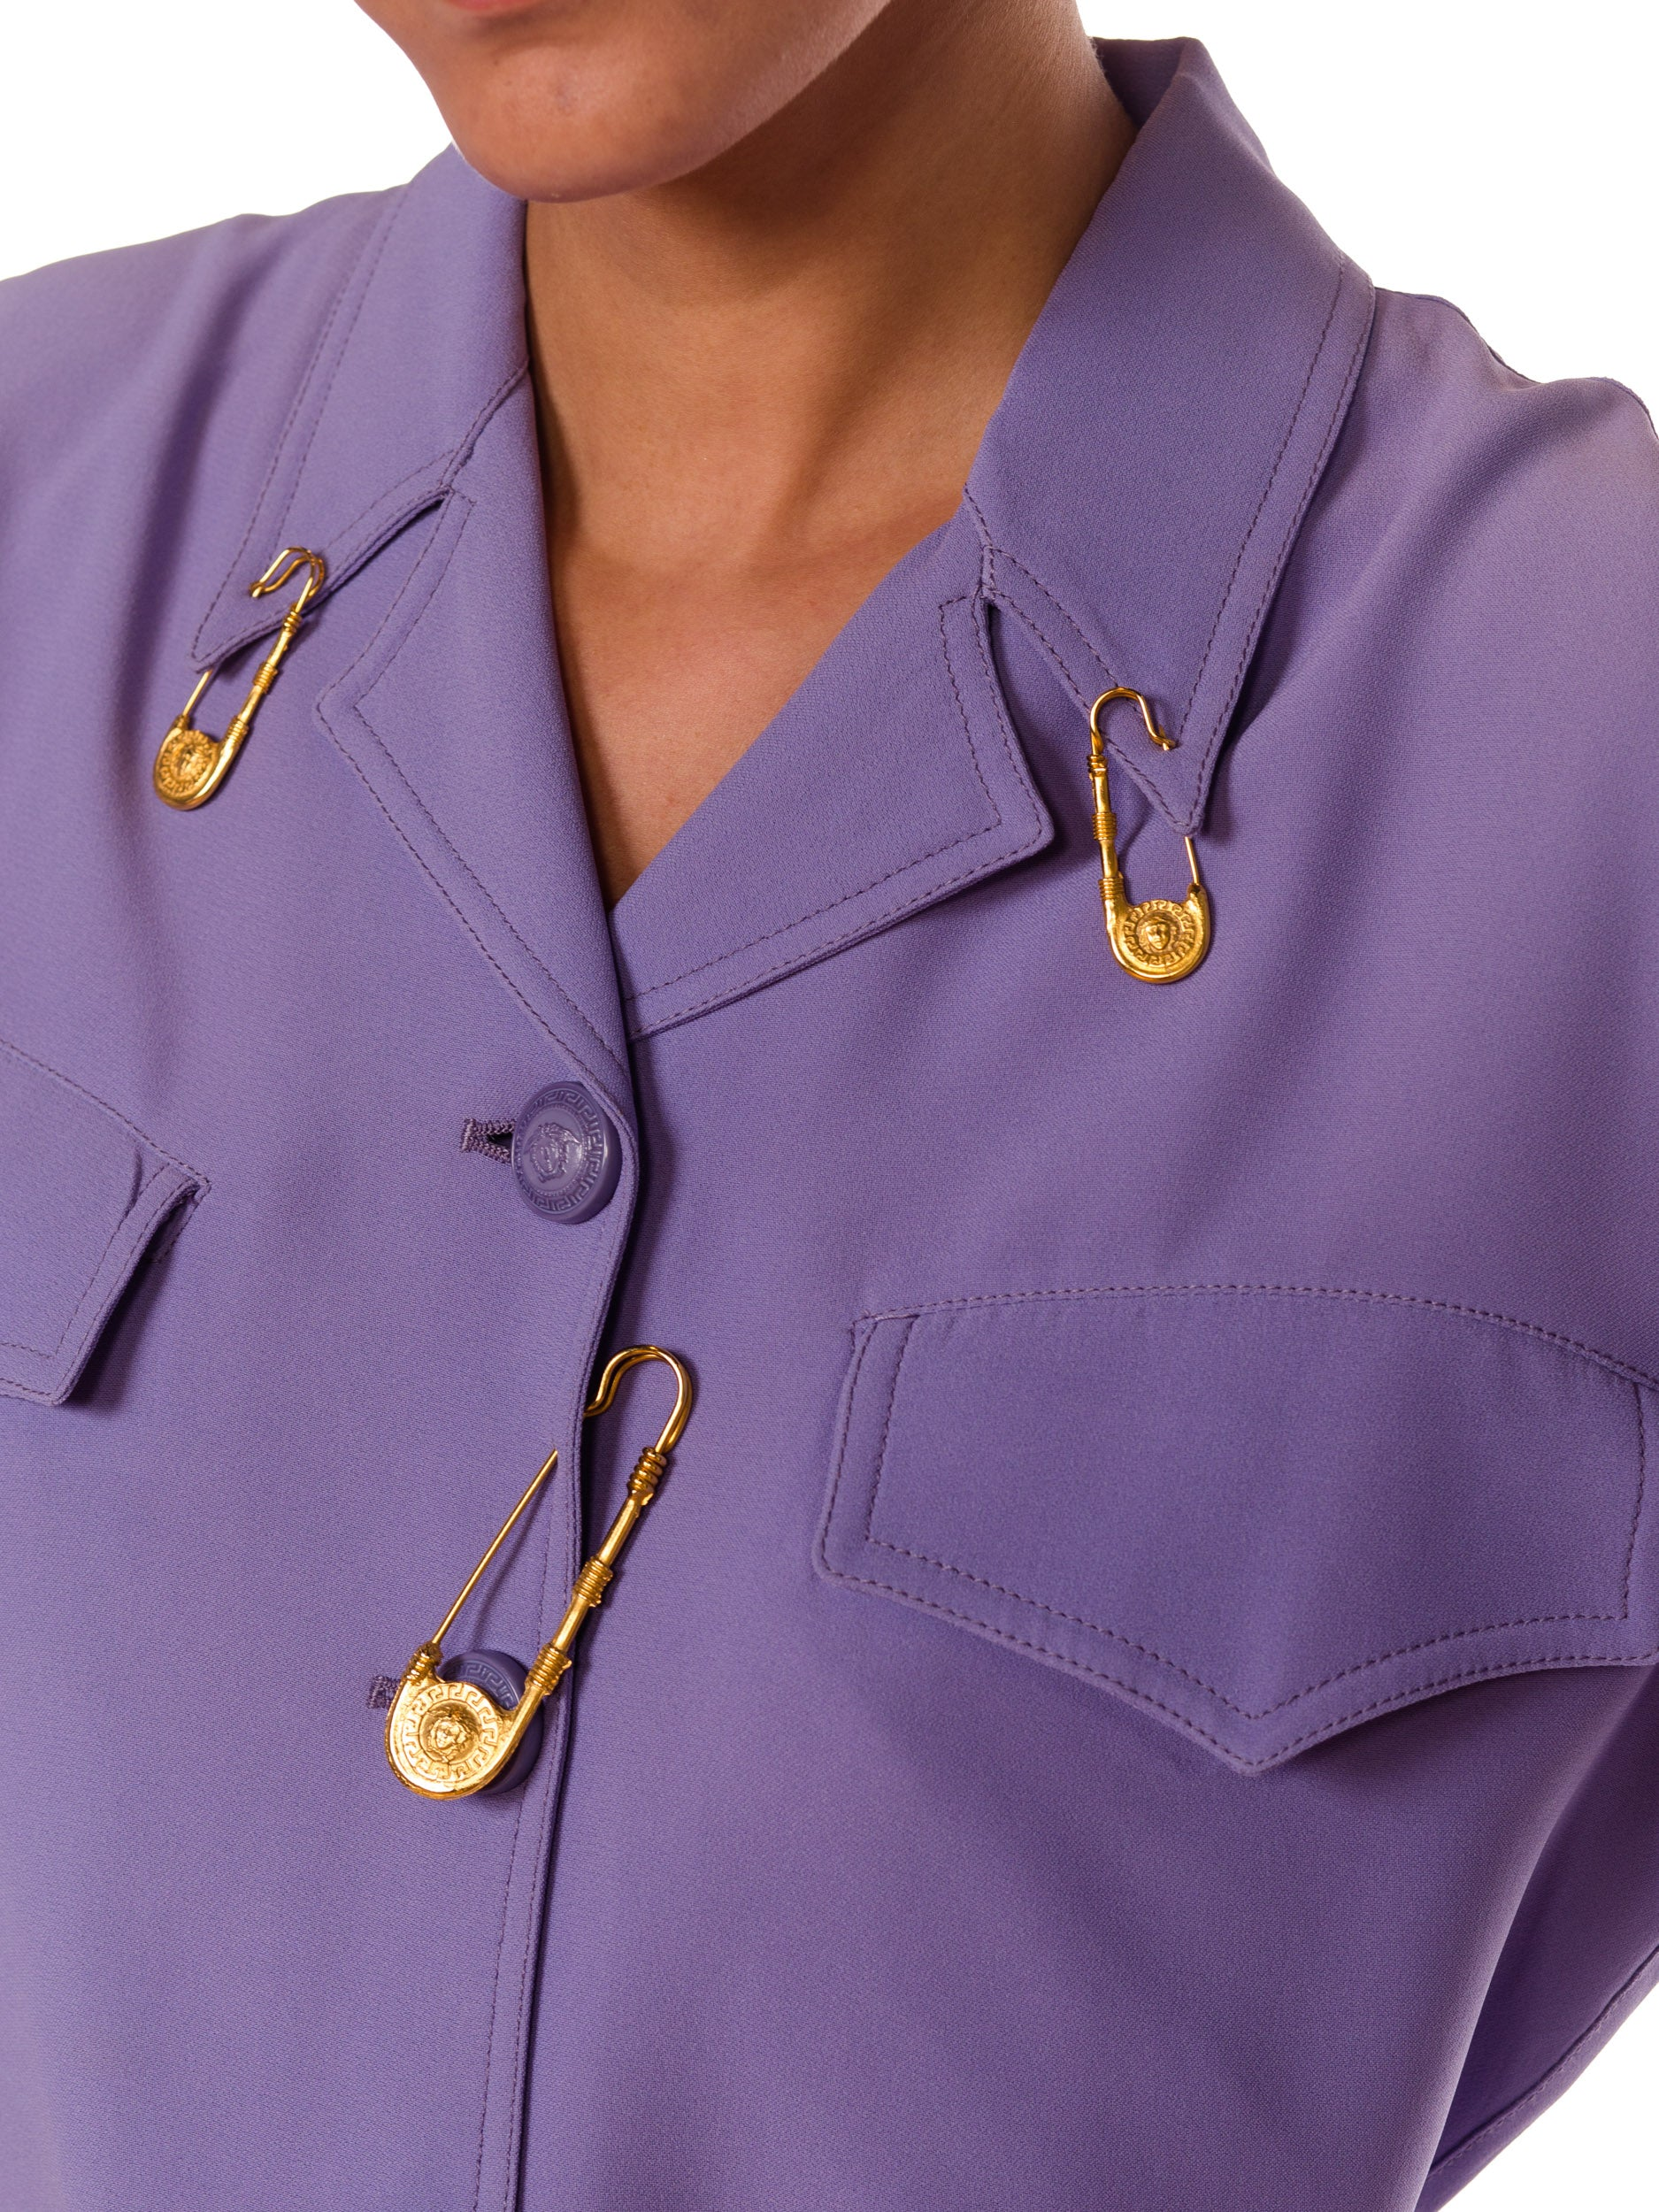 1990S GIANNI VERSACE Lilac Rayon Blend Crepe Safety Pin Suit Set